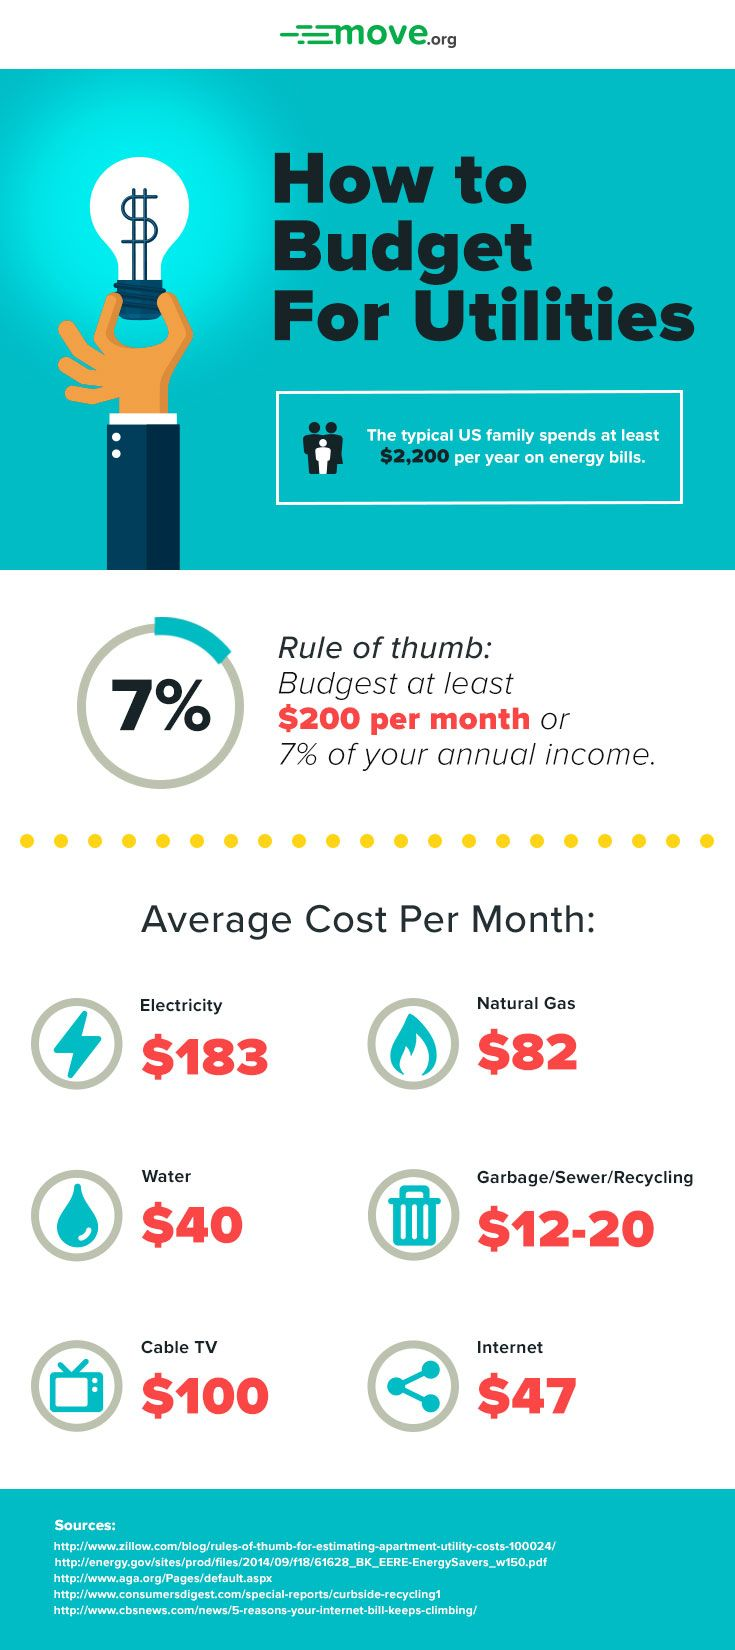 Cool Infographic Breaks Down How Much Of Your Income You Should Set Aside Each Month For Utilities Like Water Gas Electricity And More